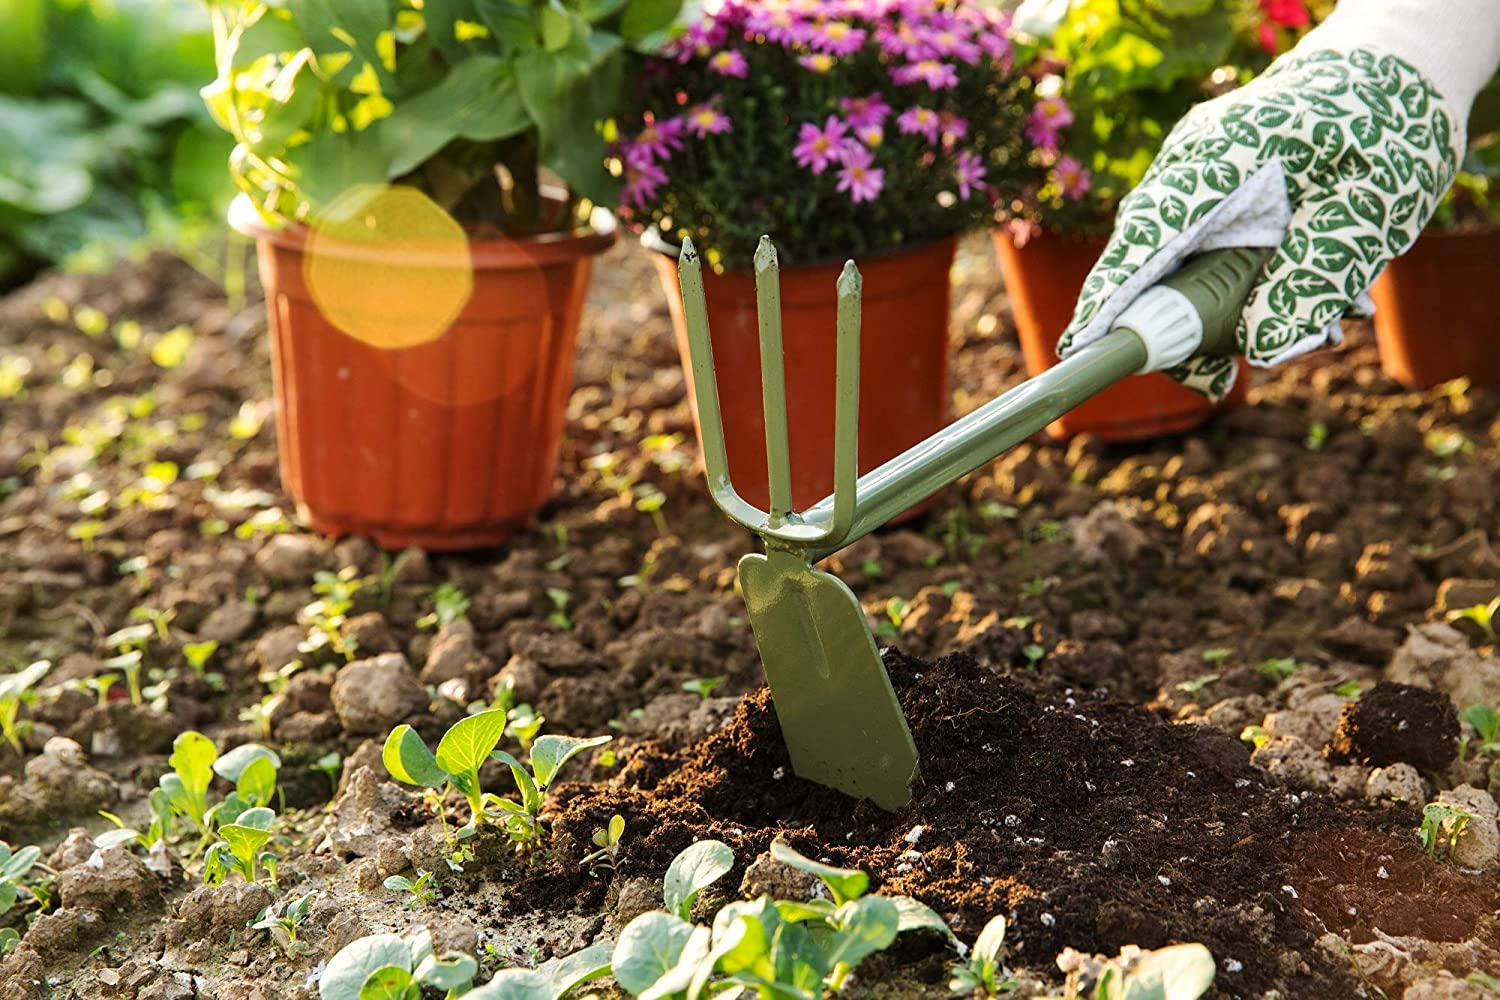 Homes Garden Bend-Proof Small Hand Fork 10.8 L x 3.15 W Carbon Steel Hand Tool Lightweight PVC Ergonomic Comfortable Grip Handle for Picking Up Leaves and Flowers Pulling Out Weeds #2018